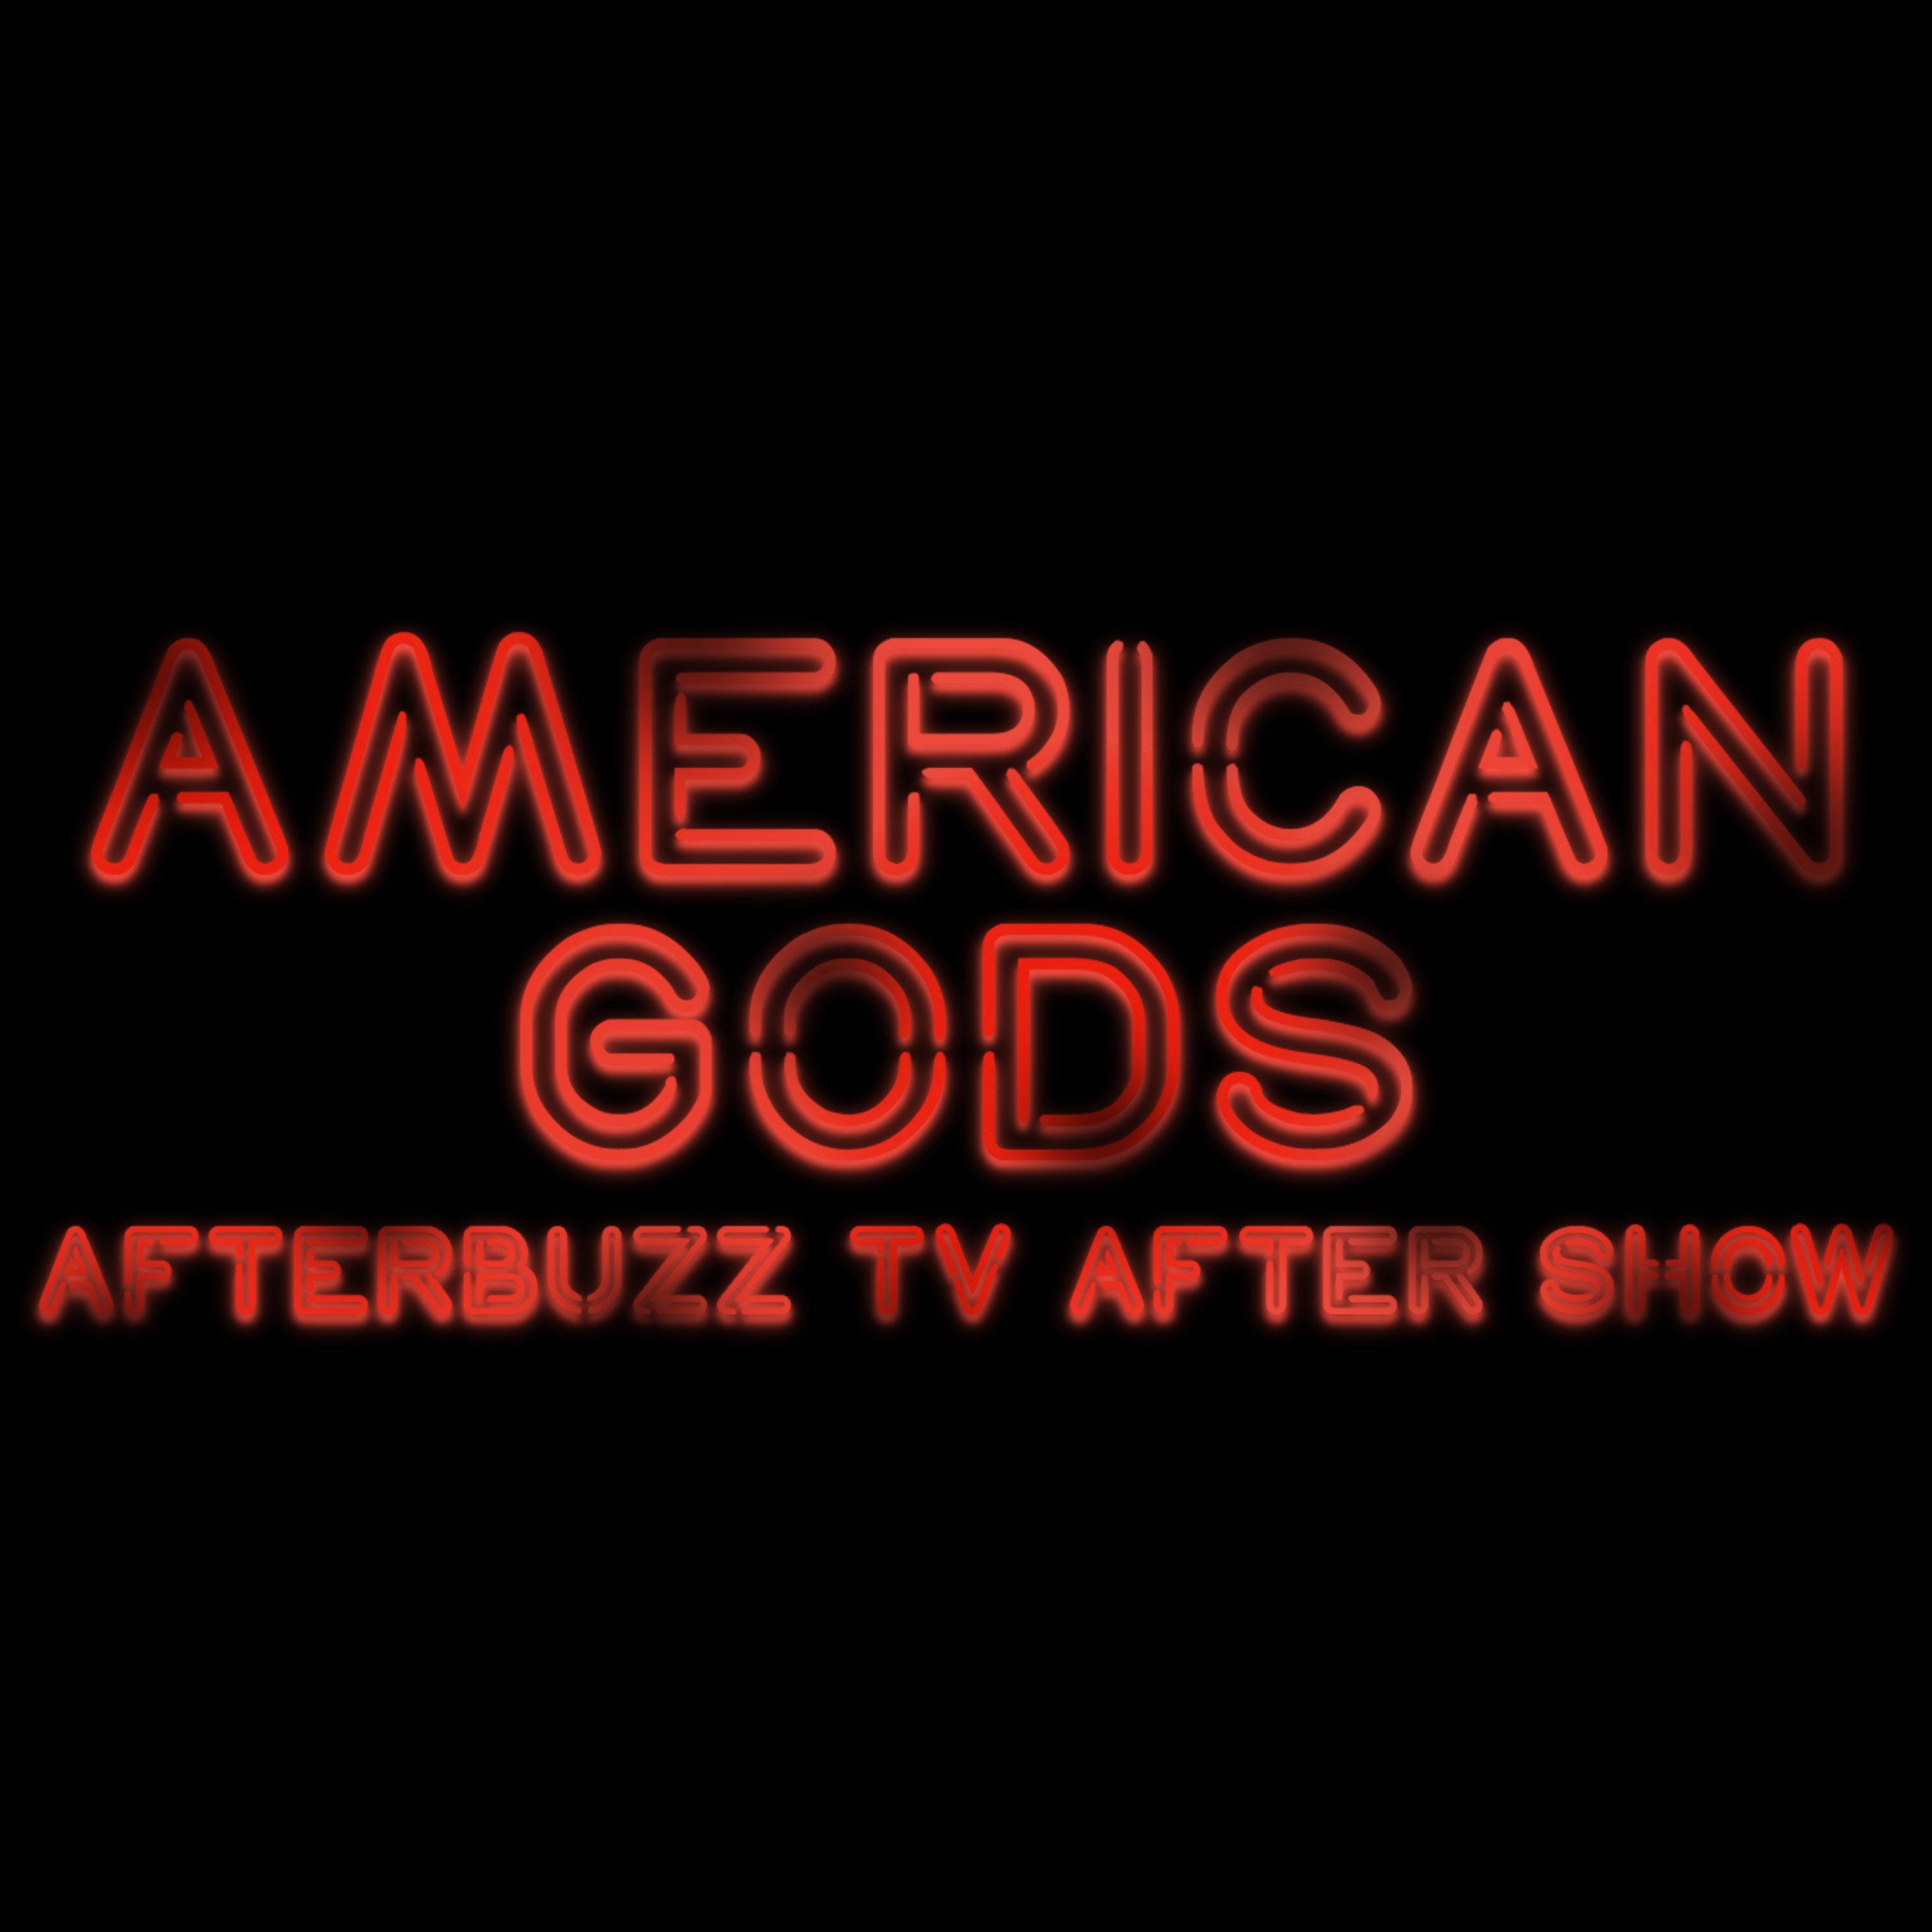 American Gods After Show